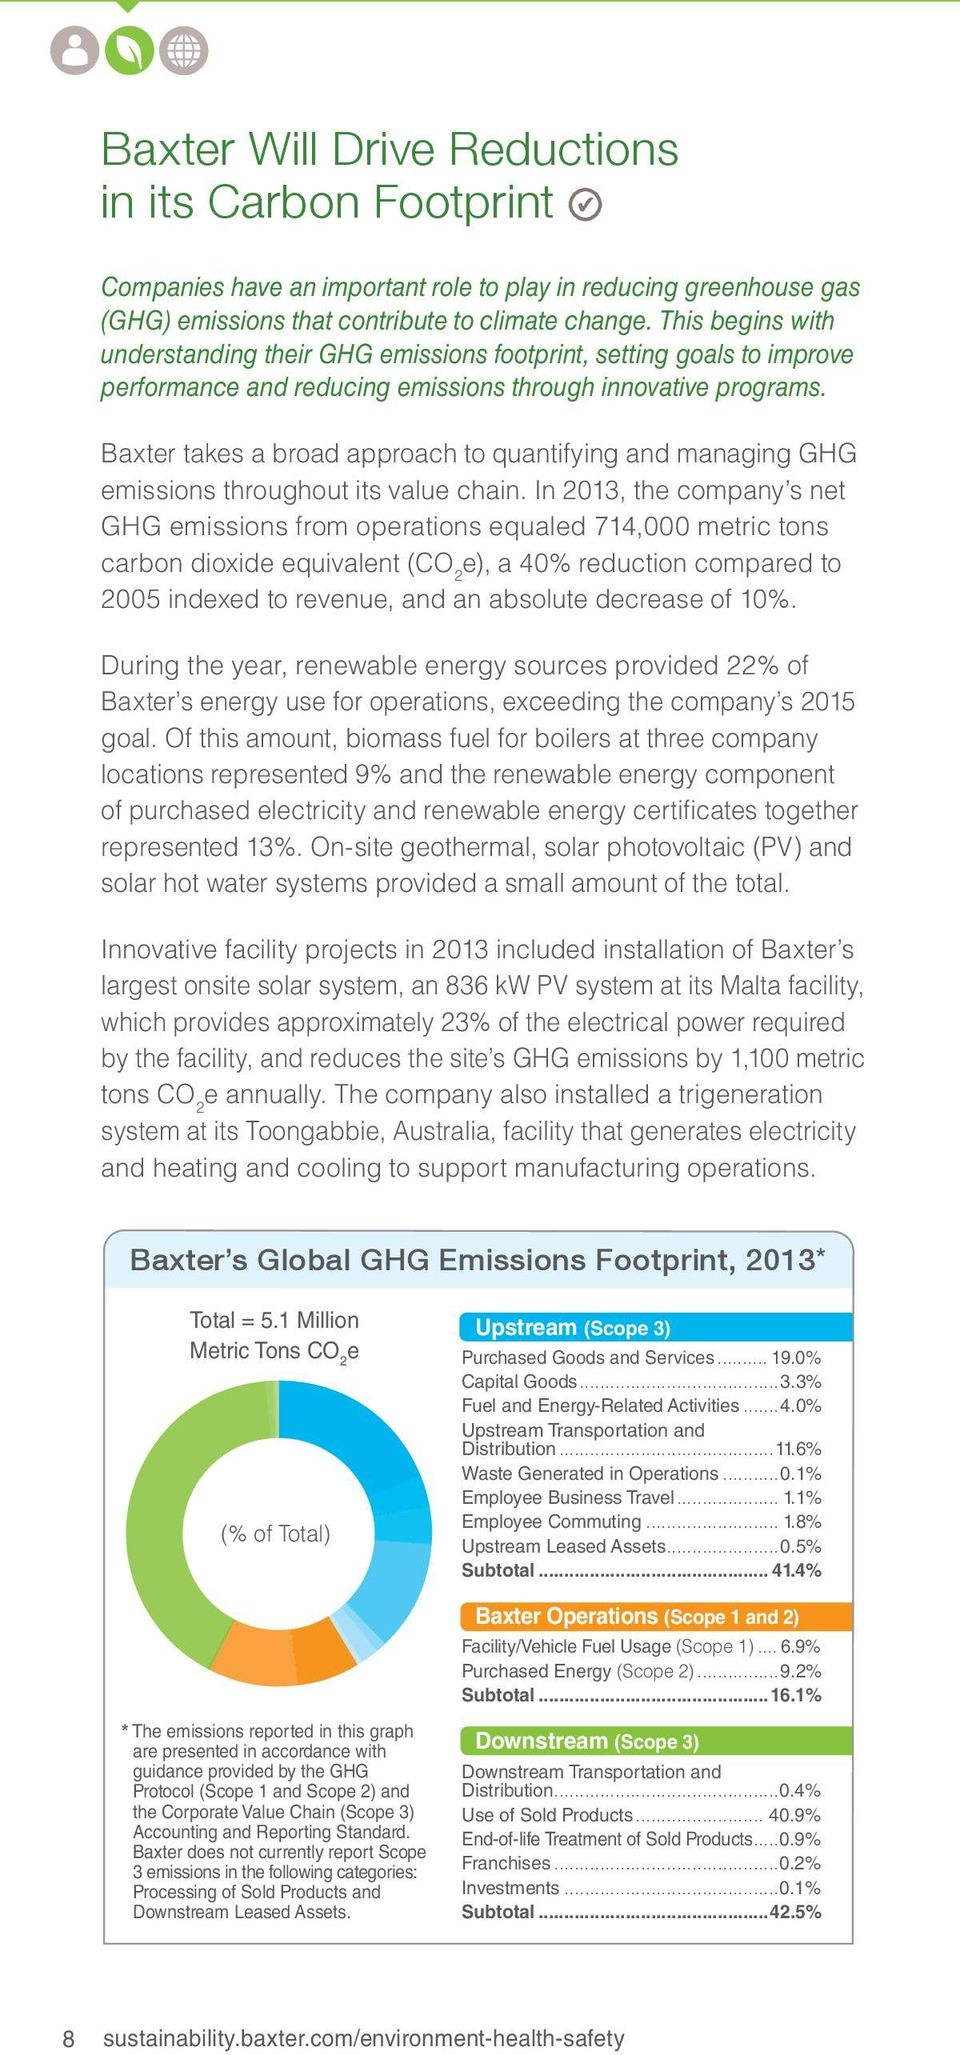 Baxter takes a broad approach to quantifying and managing GHG emissions throughout its value chain.